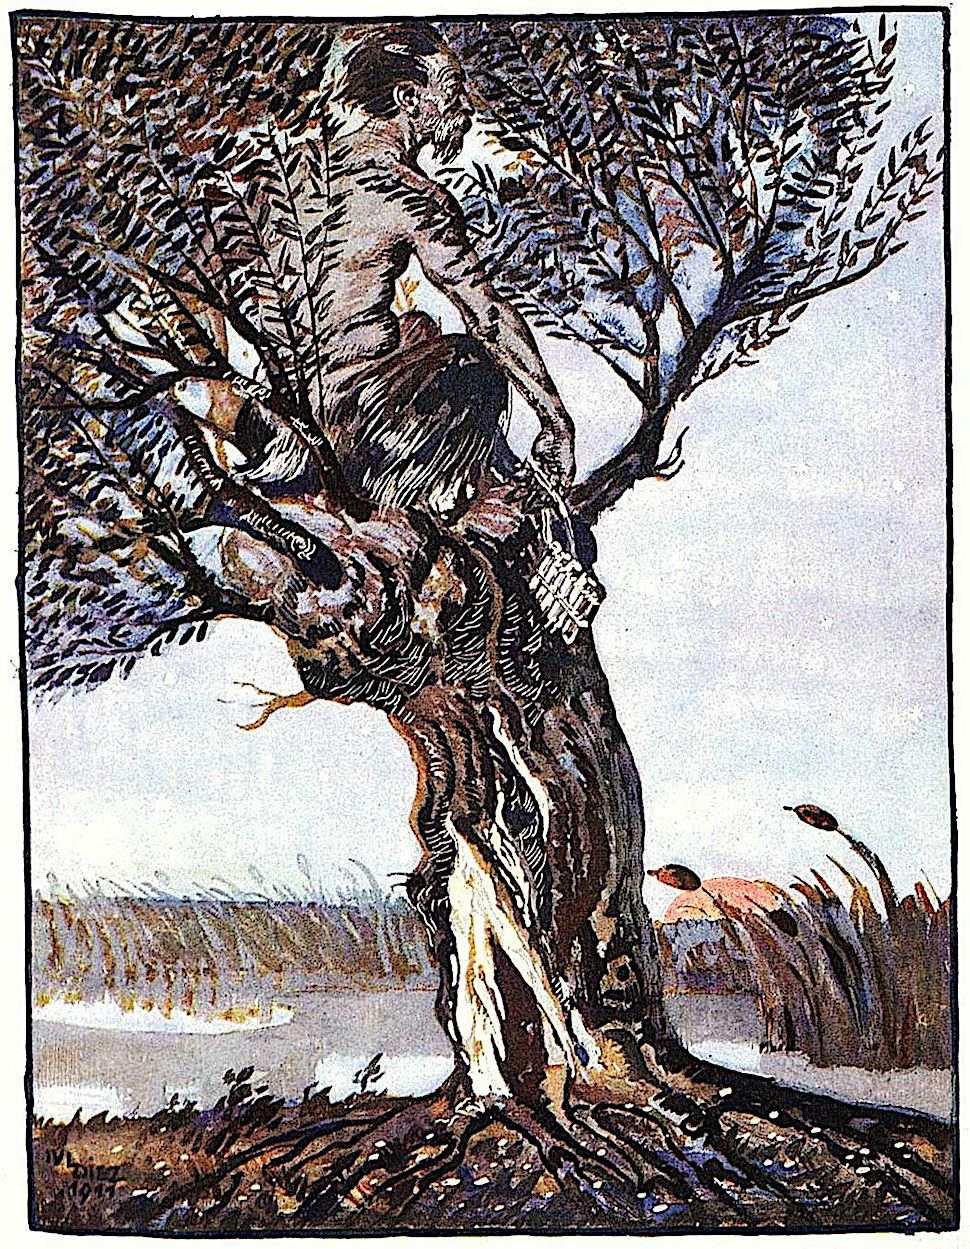 a Julius Diez illustration of Pan in a tree near some marshes, for Jugend?